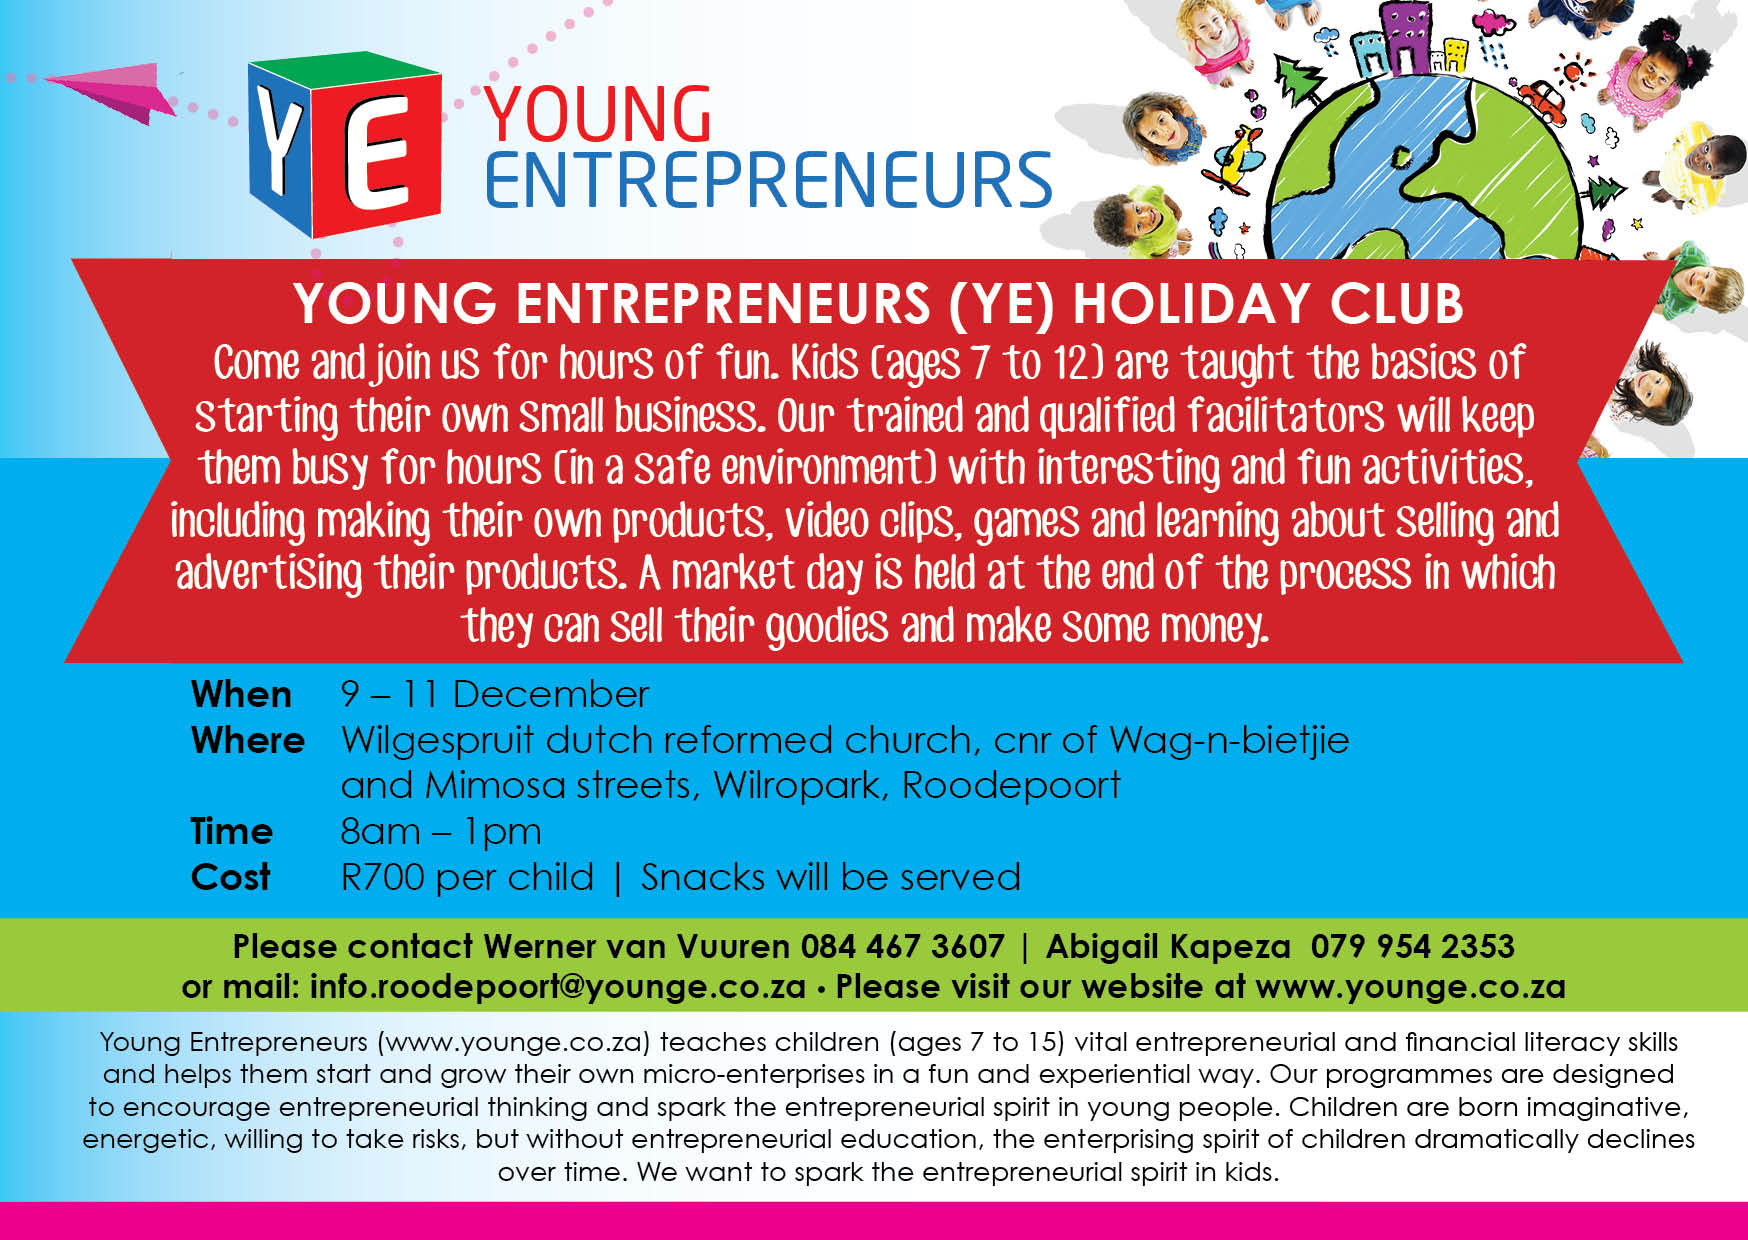 Young Entrepreneurs Holiday Club @ Wilgespruit Dutch Reformed Church, Cnr Wag-'n-bietjie & Mimosa Streets, Wilropark